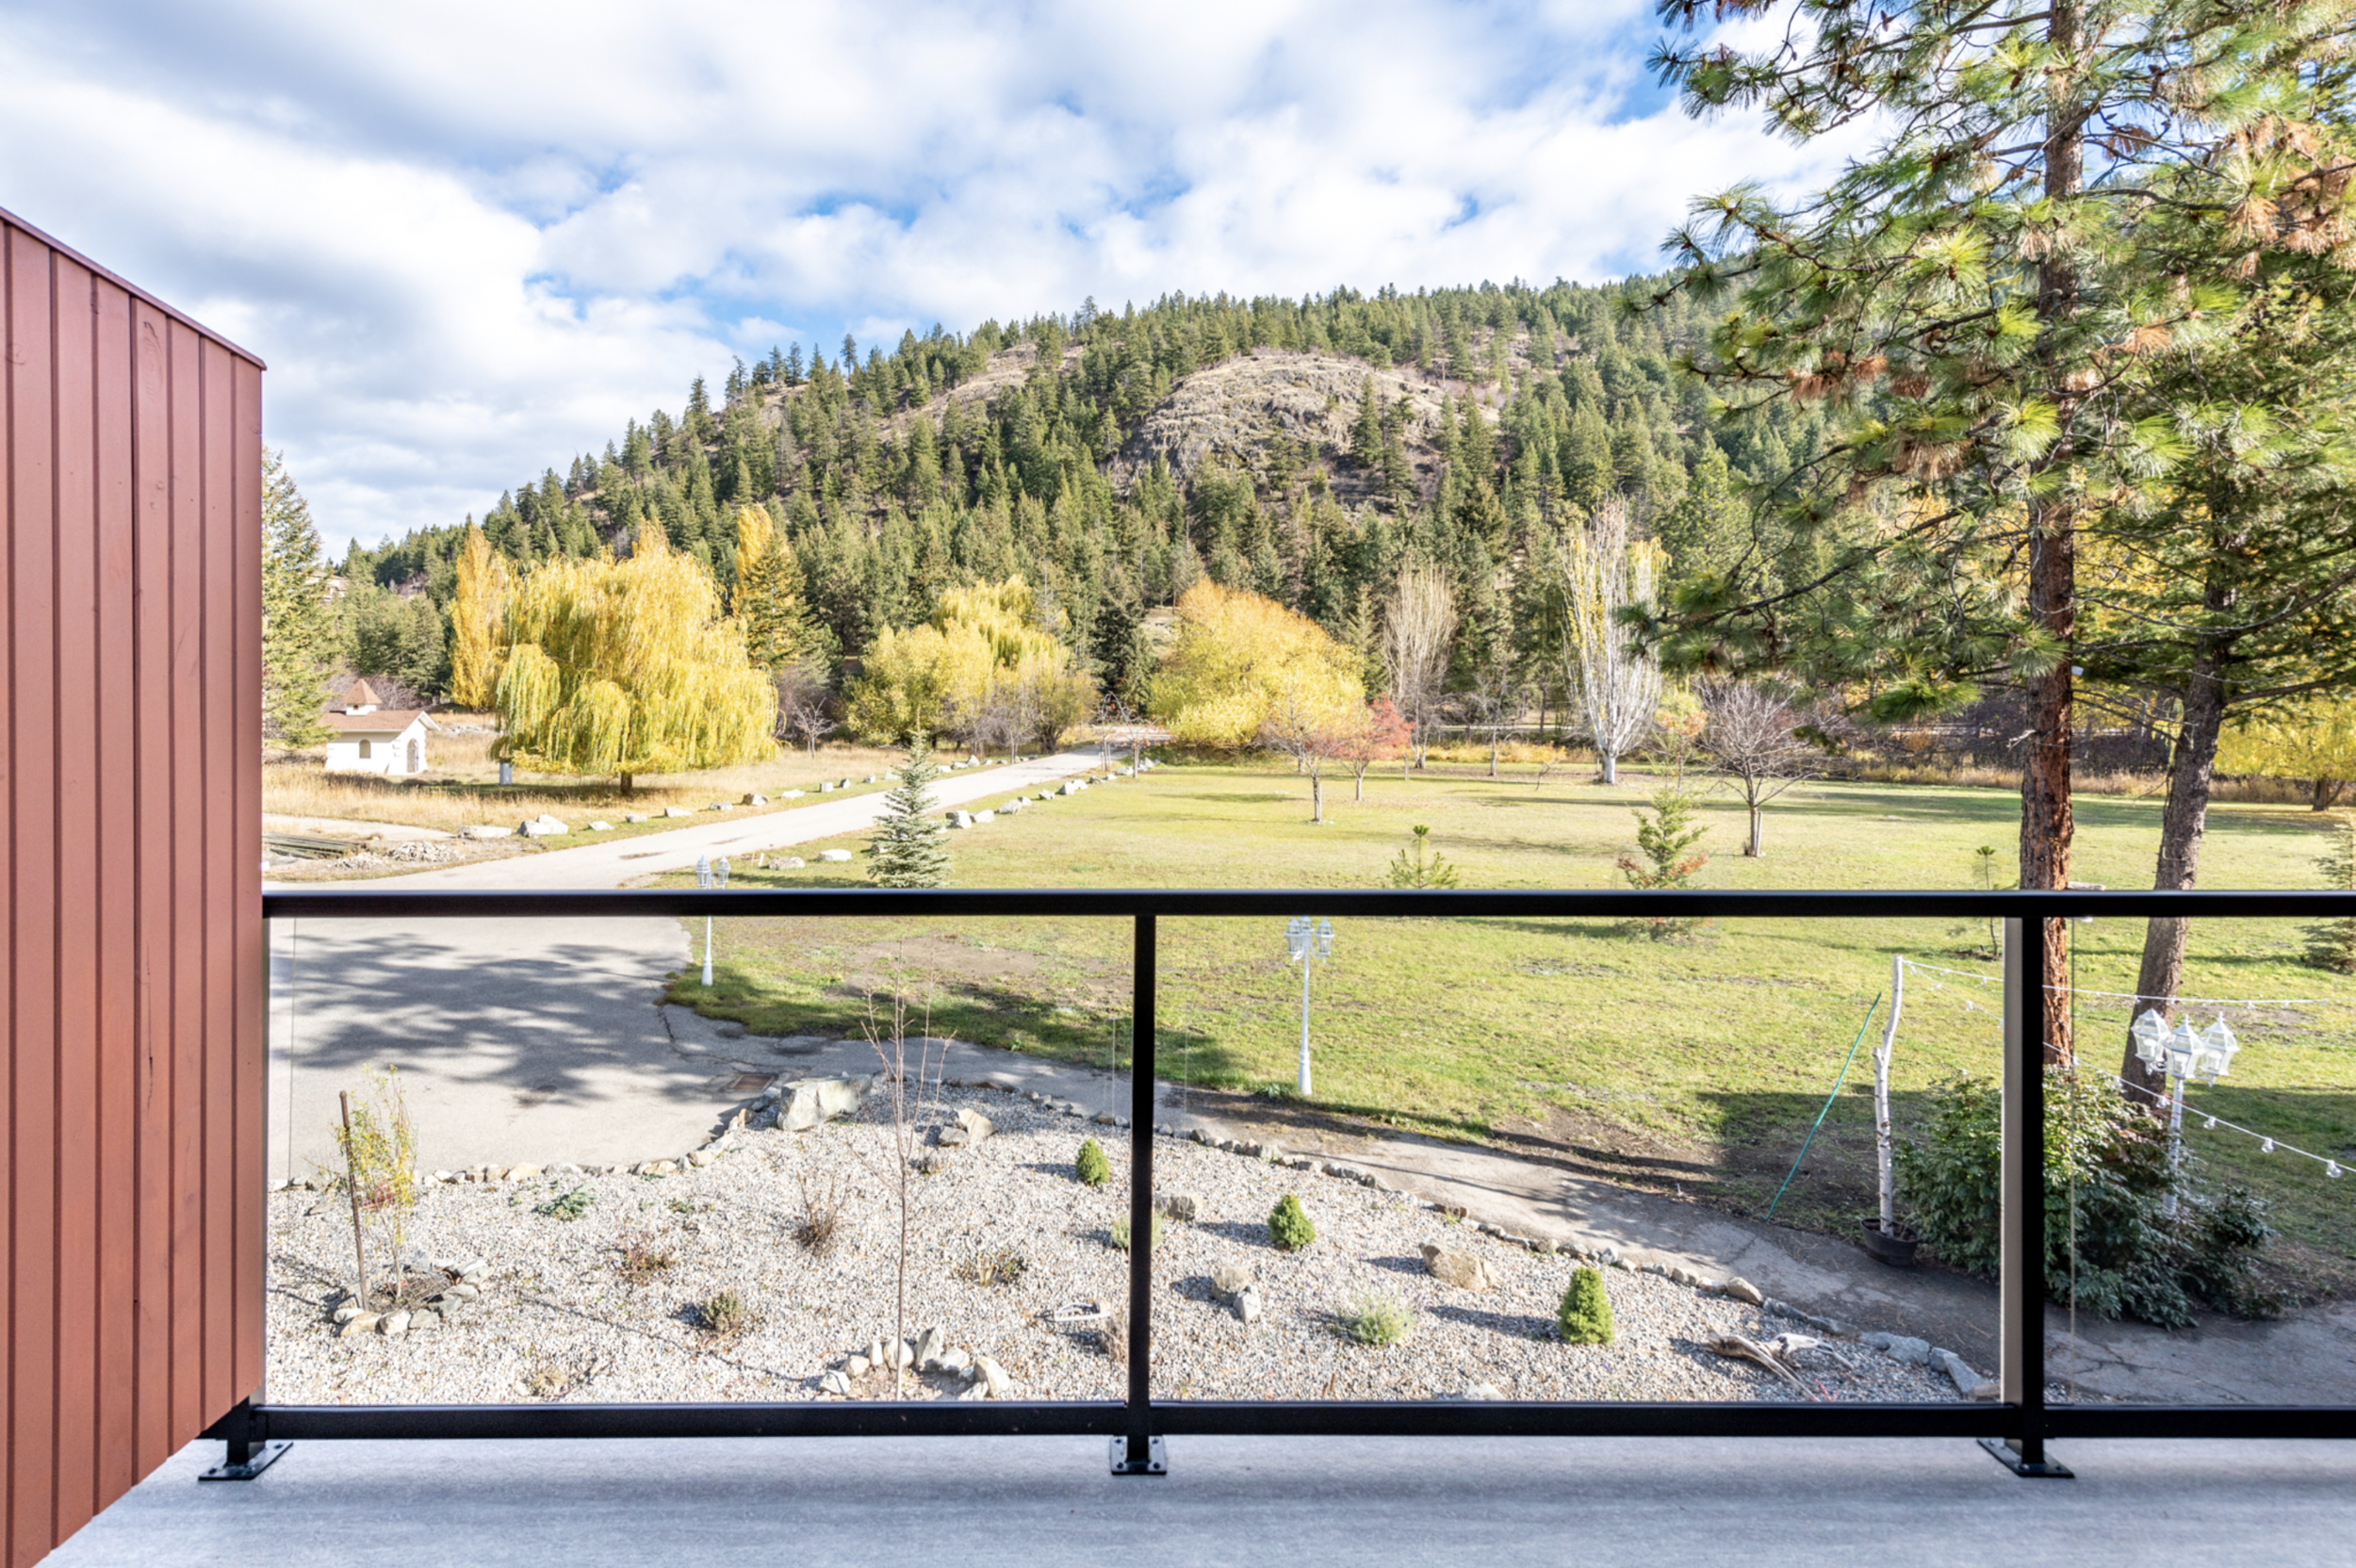 Guest suite - 3,500 square feet with 5 large bedrooms, 5 private washrooms, a common living and kitchen space, laundry, and 5 private patio spaces to enjoy the incredible view of Deer Park and the Monashee Mountains.